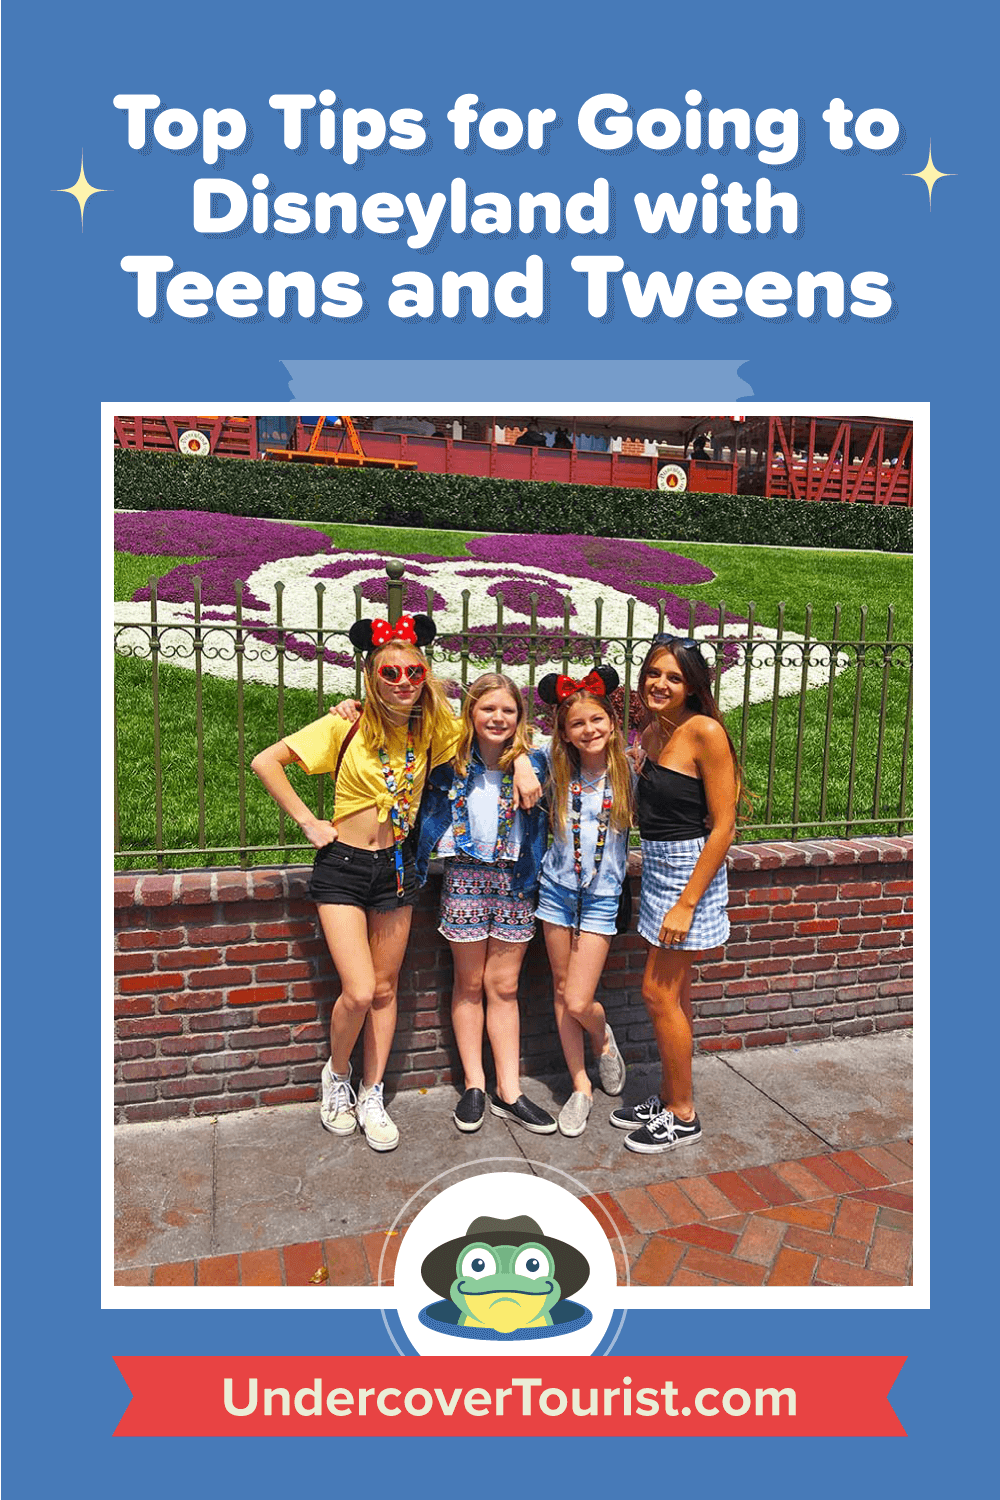 Tips for Going to Disneyland with Teens and Tweens - Pinterest